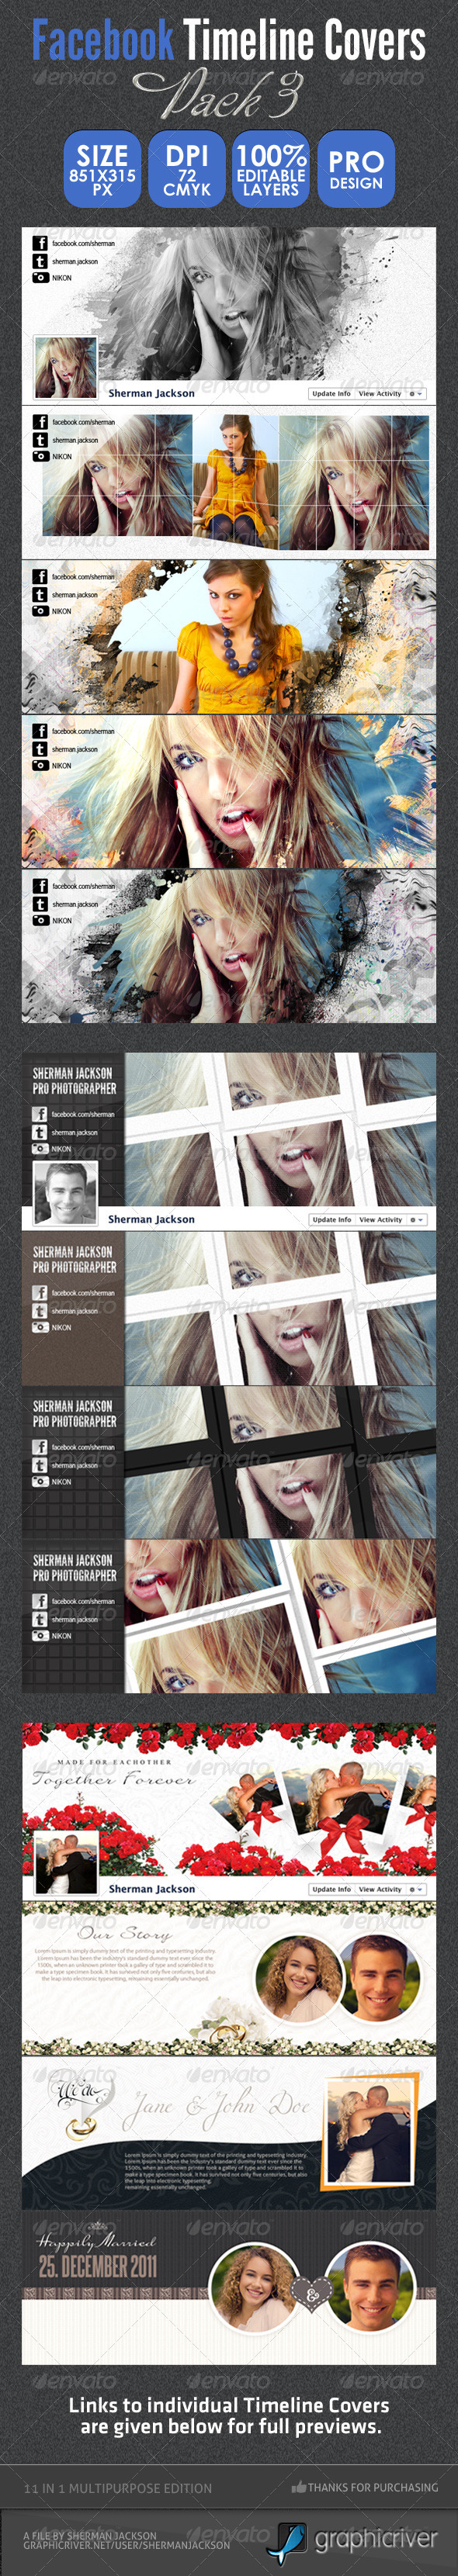 GraphicRiver Facebook Timeline Bundle Pack 3 2670295